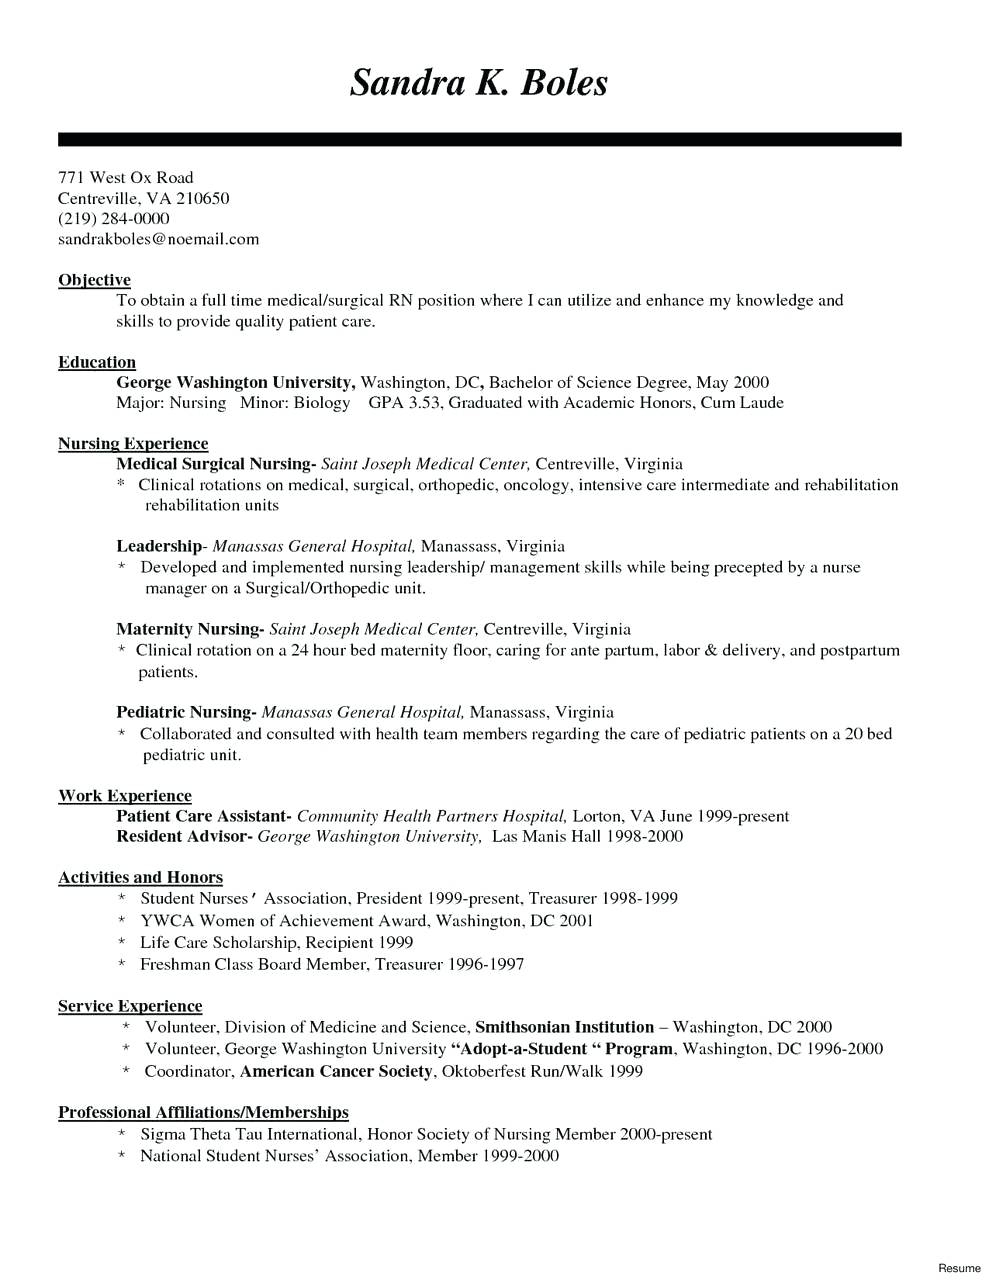 Nurse Cover Letter Sample Resume For Nurse Practitioner Student Awesome Gallery Pediatric Nurse Cover Letter Nursing Resume Examples With Clinical Of Sample Resume For Nurse Practitioner Student nurse cover letter|wikiresume.com